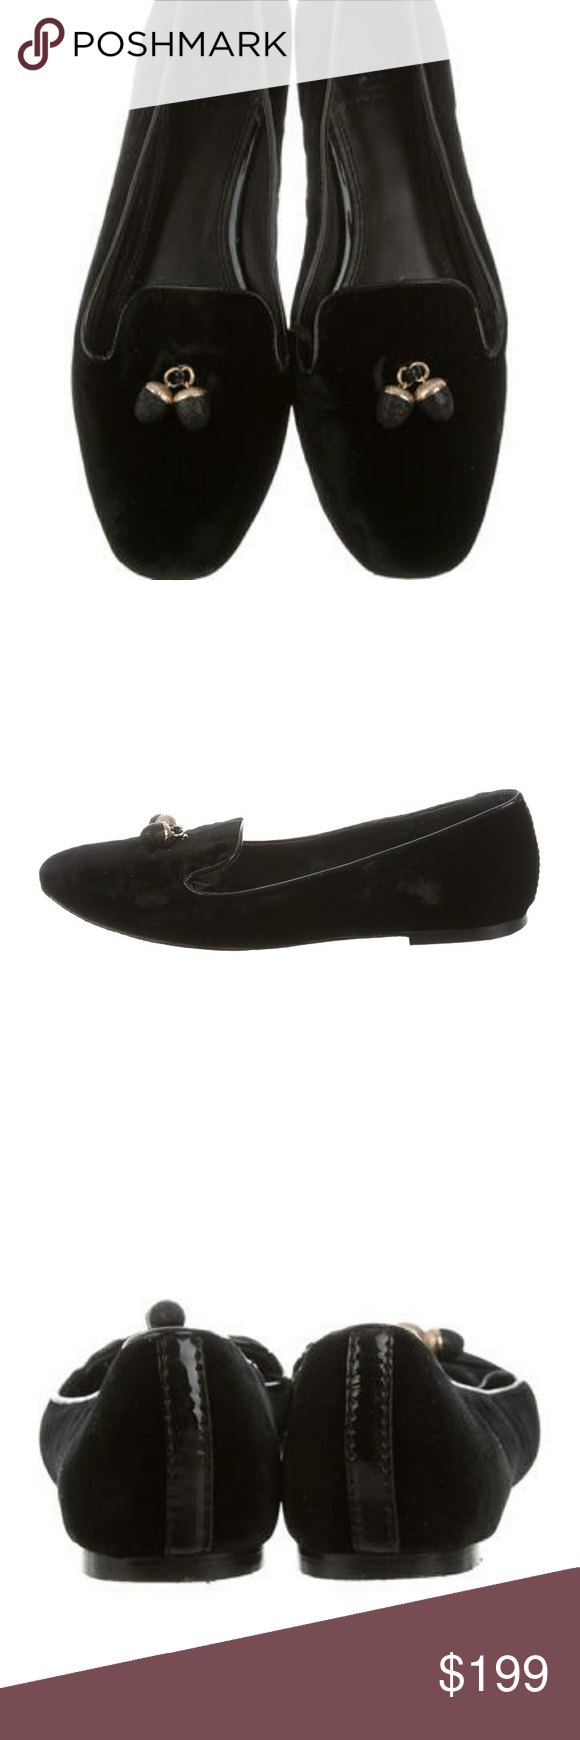 5f5171f05f52a2 Tory Burch Acorn Velvet Loafers Black velvet Tory Burch smoking slippers  with acorn charms at vamps